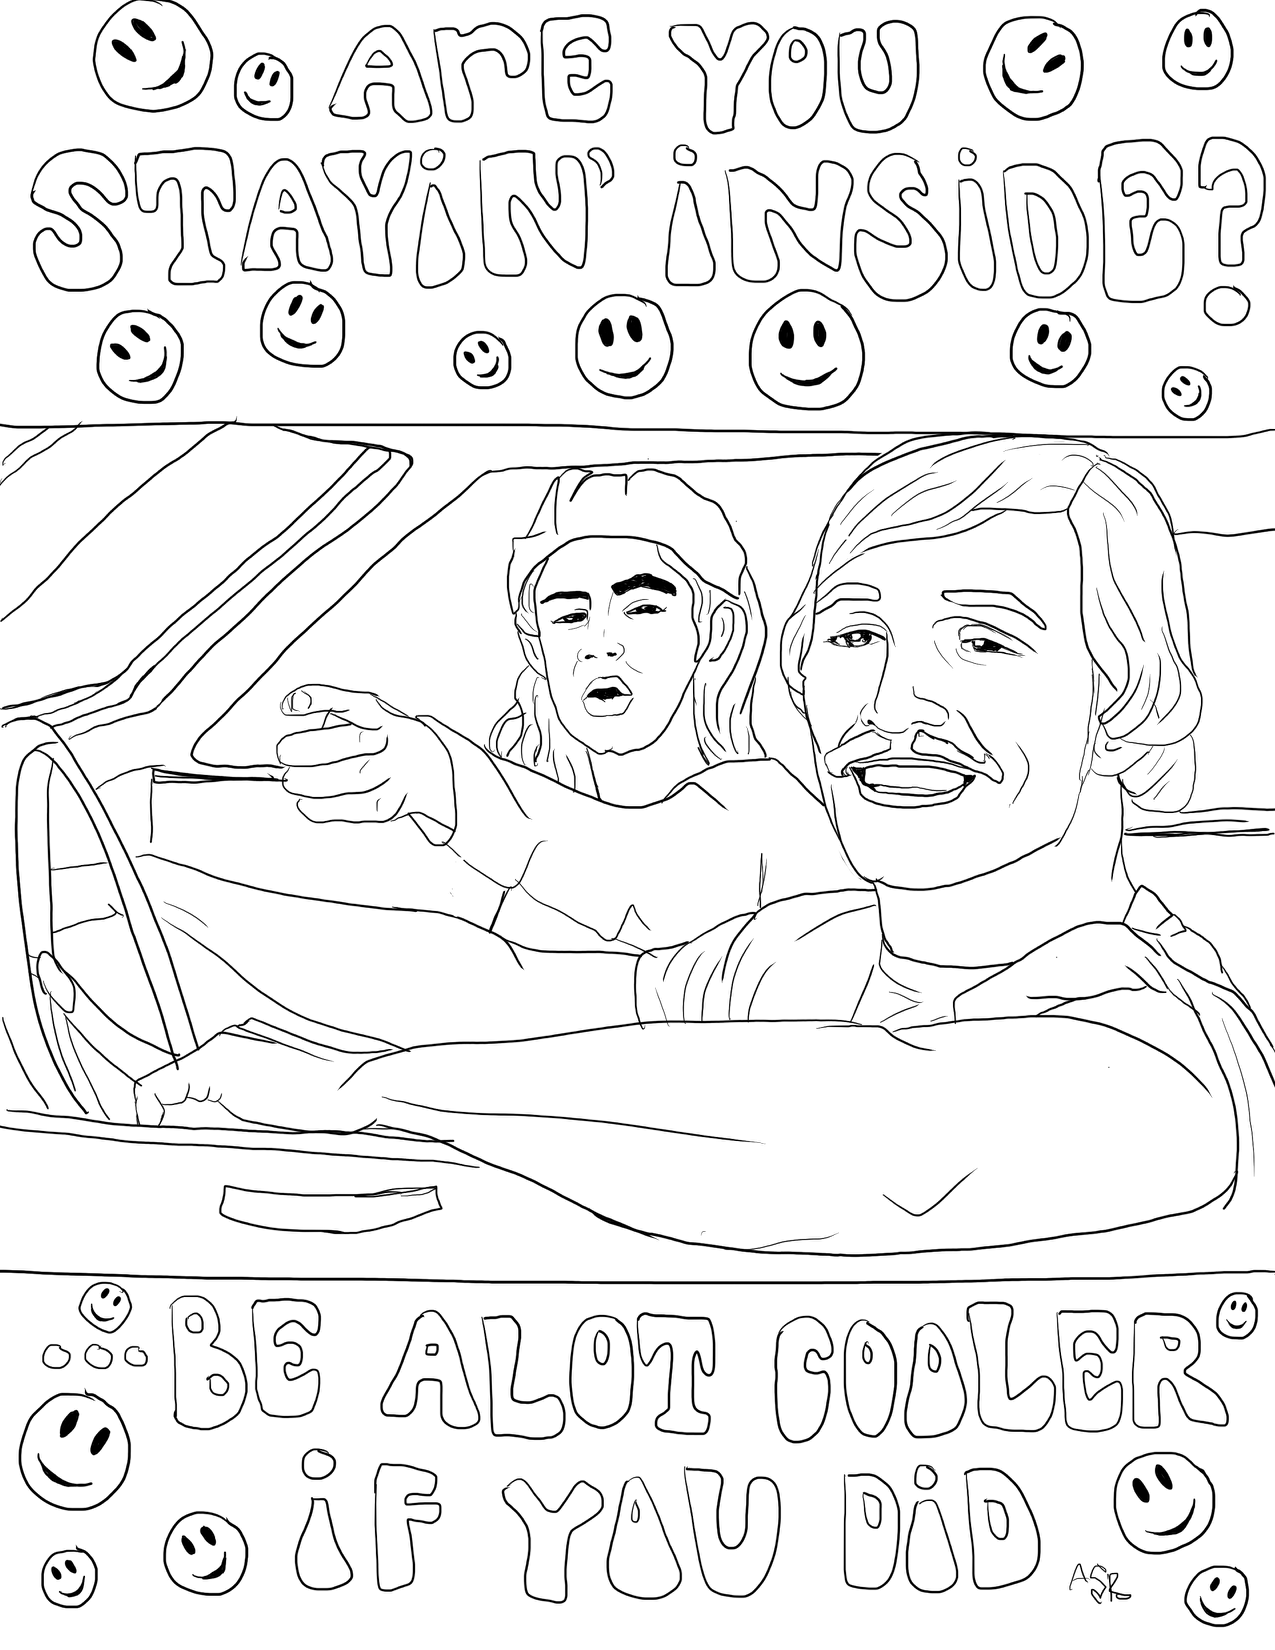 http://www.pastemagazine.com/articles/2020/05/20/dazedandconfused_coloringpage_edit.png